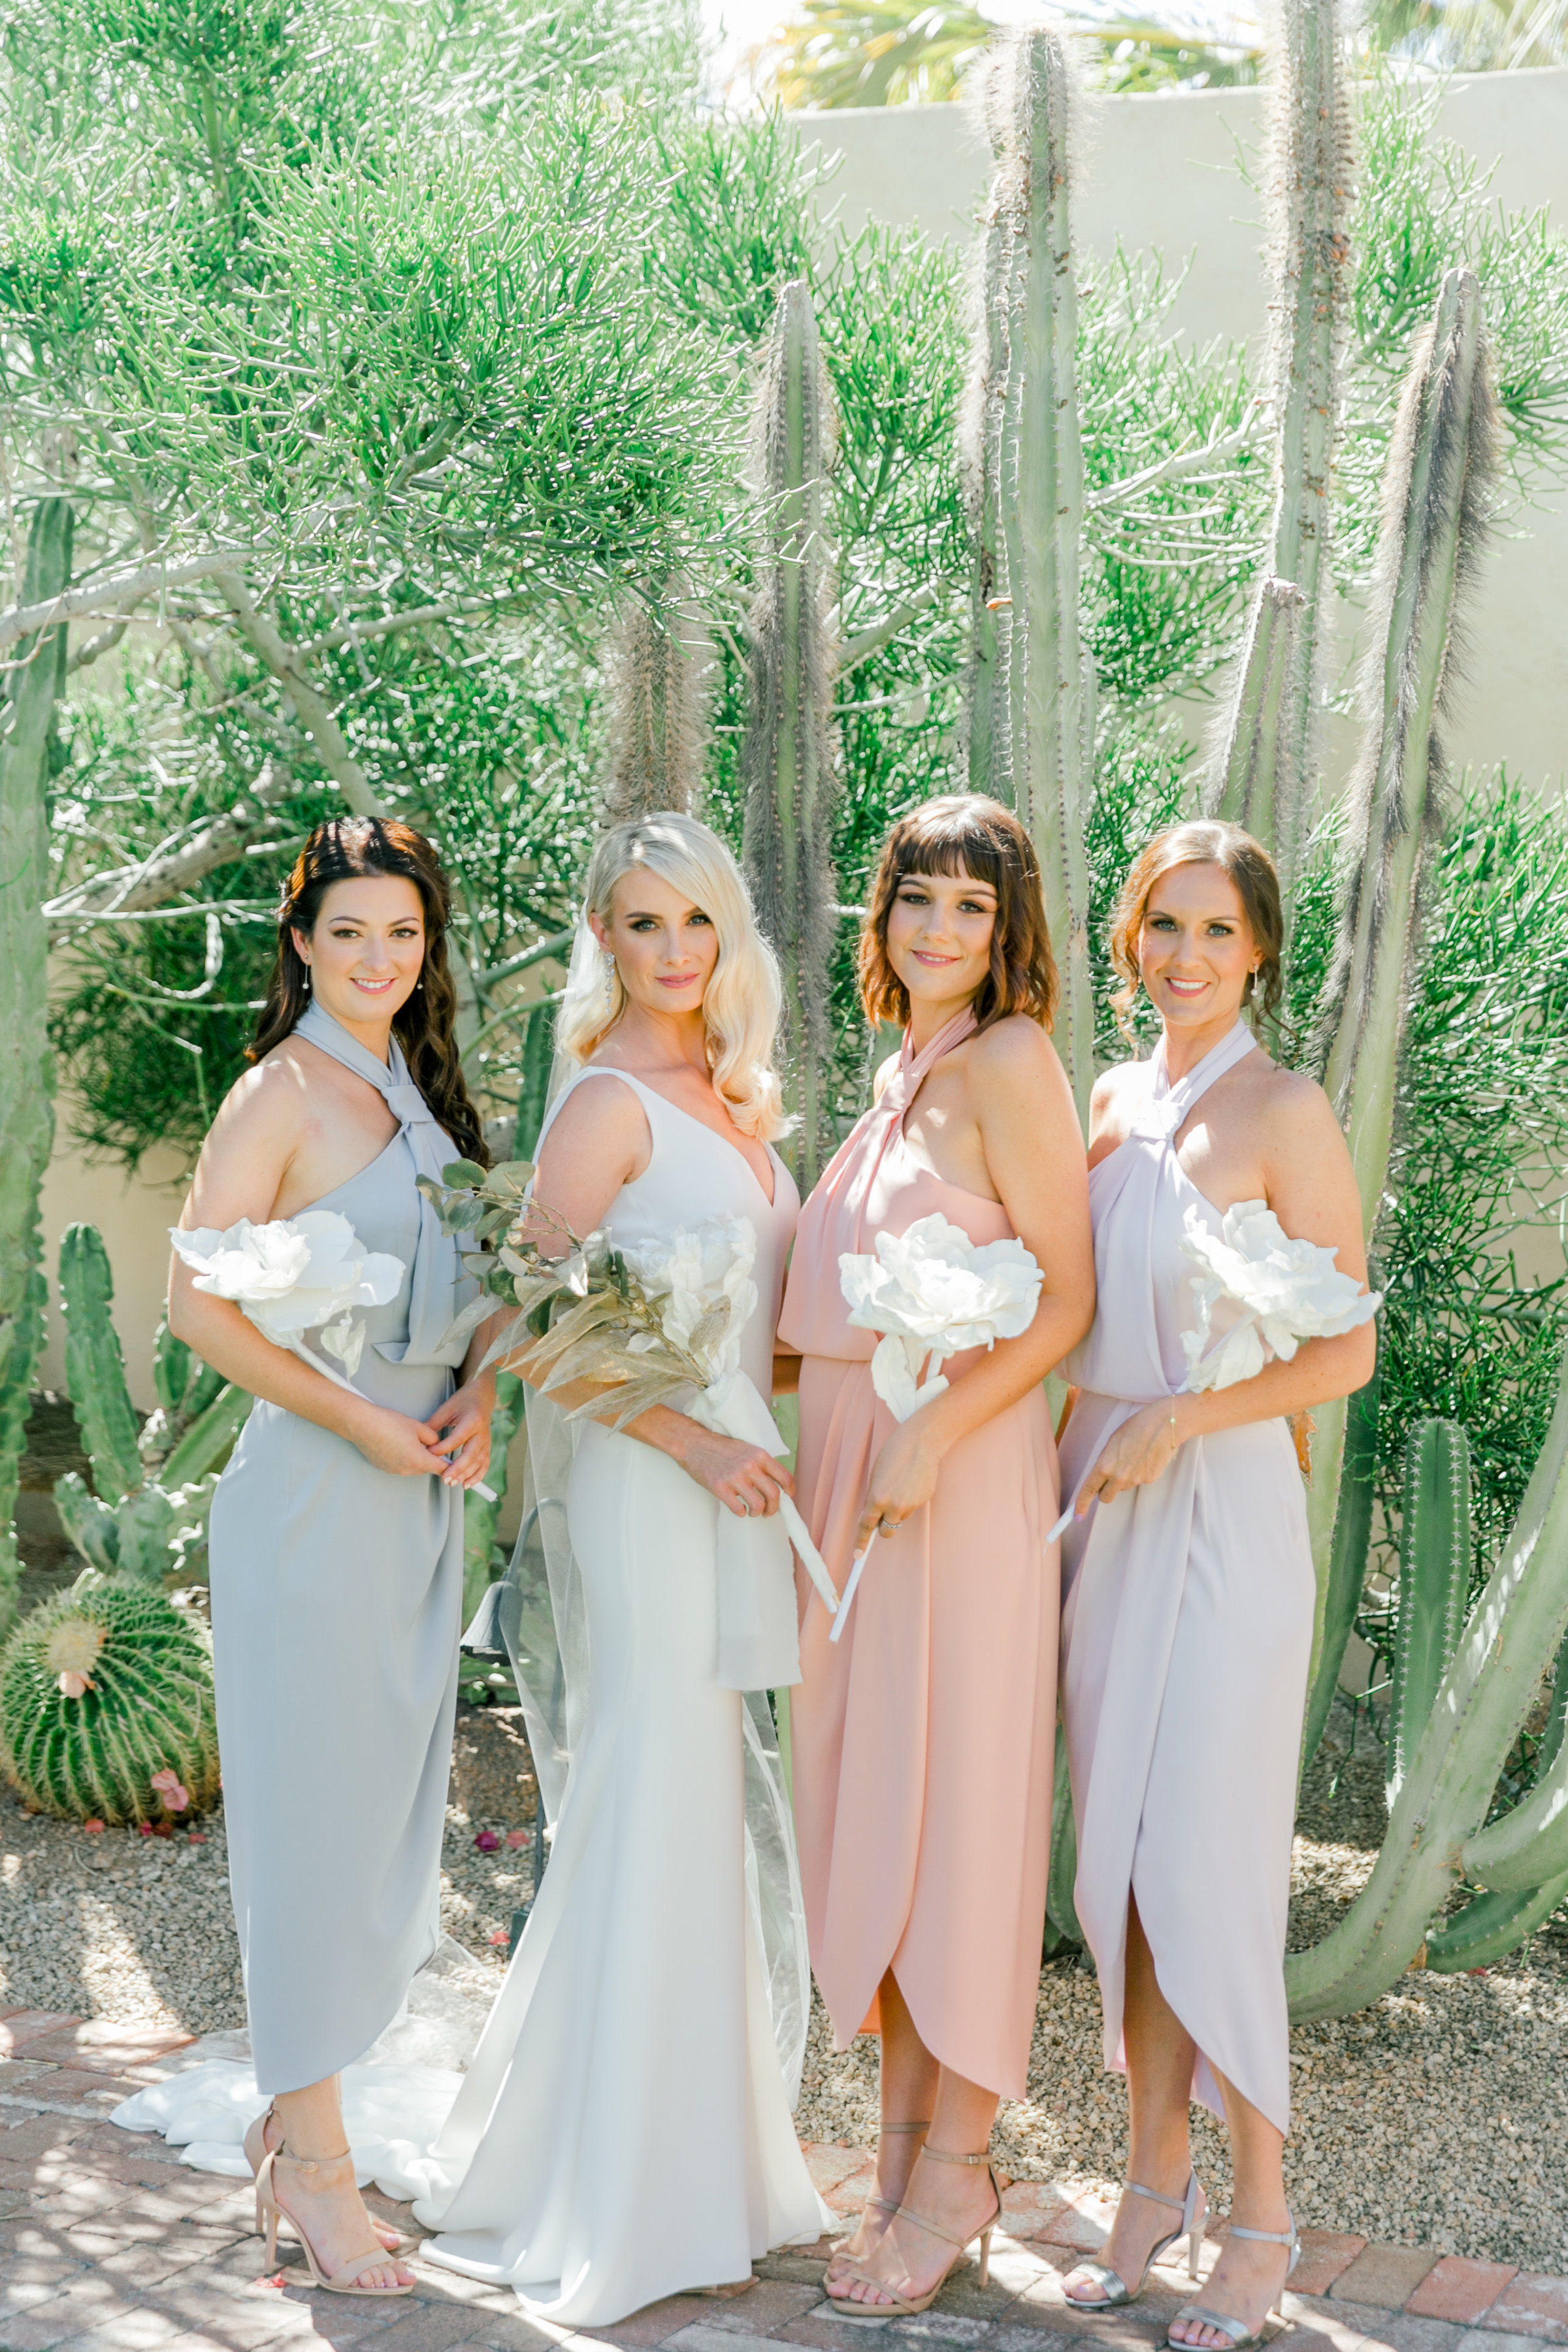 Karlie Colleen Photography - Arizona Wedding - Royal Palms Resort- Alex & Alex-56